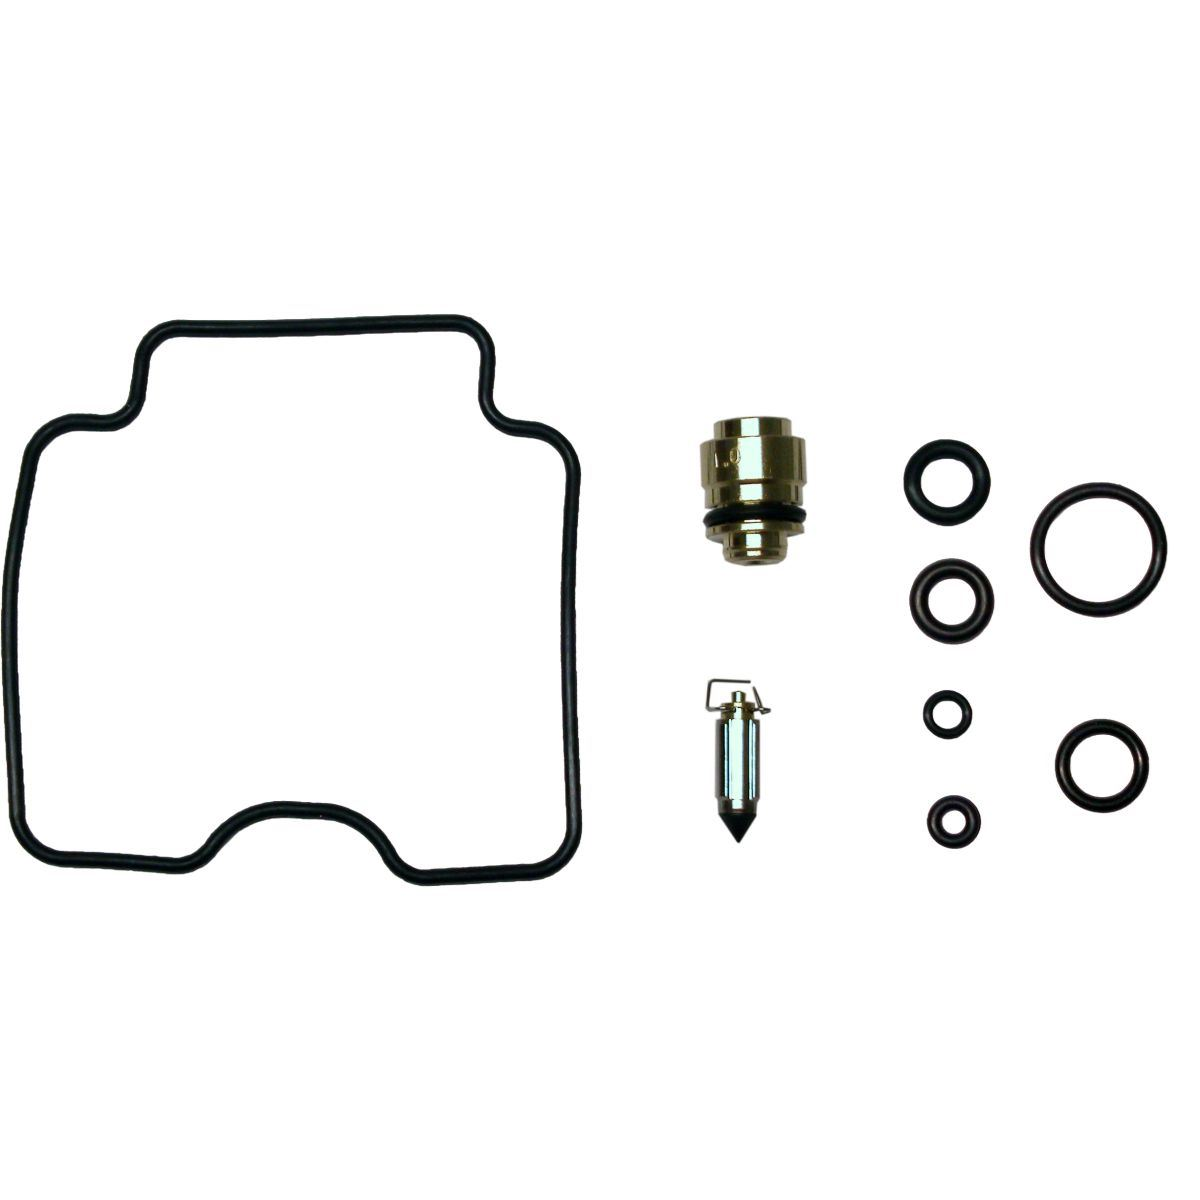 AW Motorcycle Parts. Carburettor Repair Kit Yamaha XVS1100